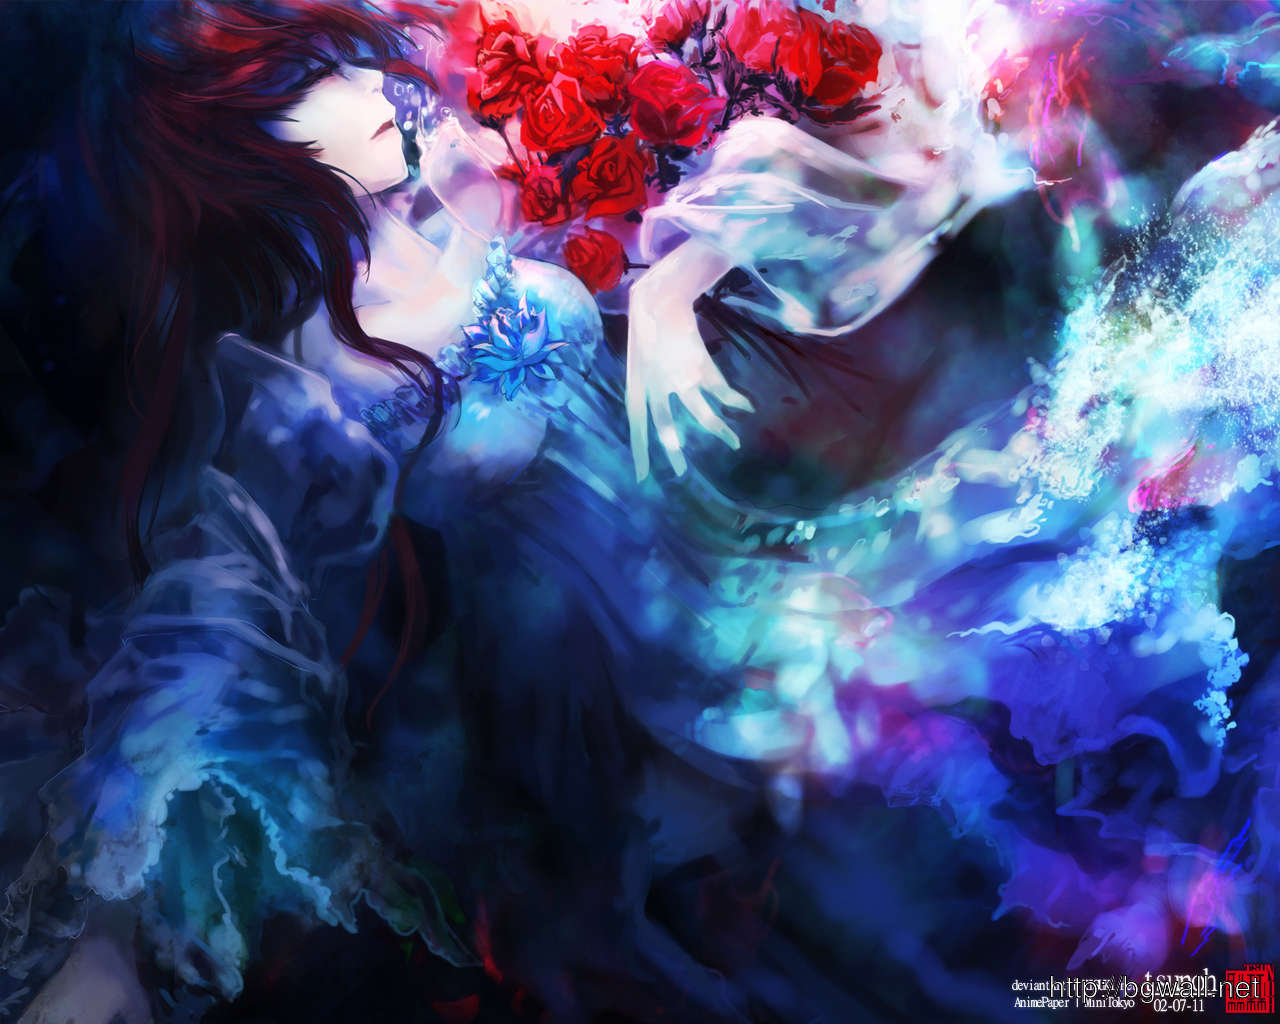 Anime Wallpapers Original Art Drowning Dream 1280 X 1024 Full Size